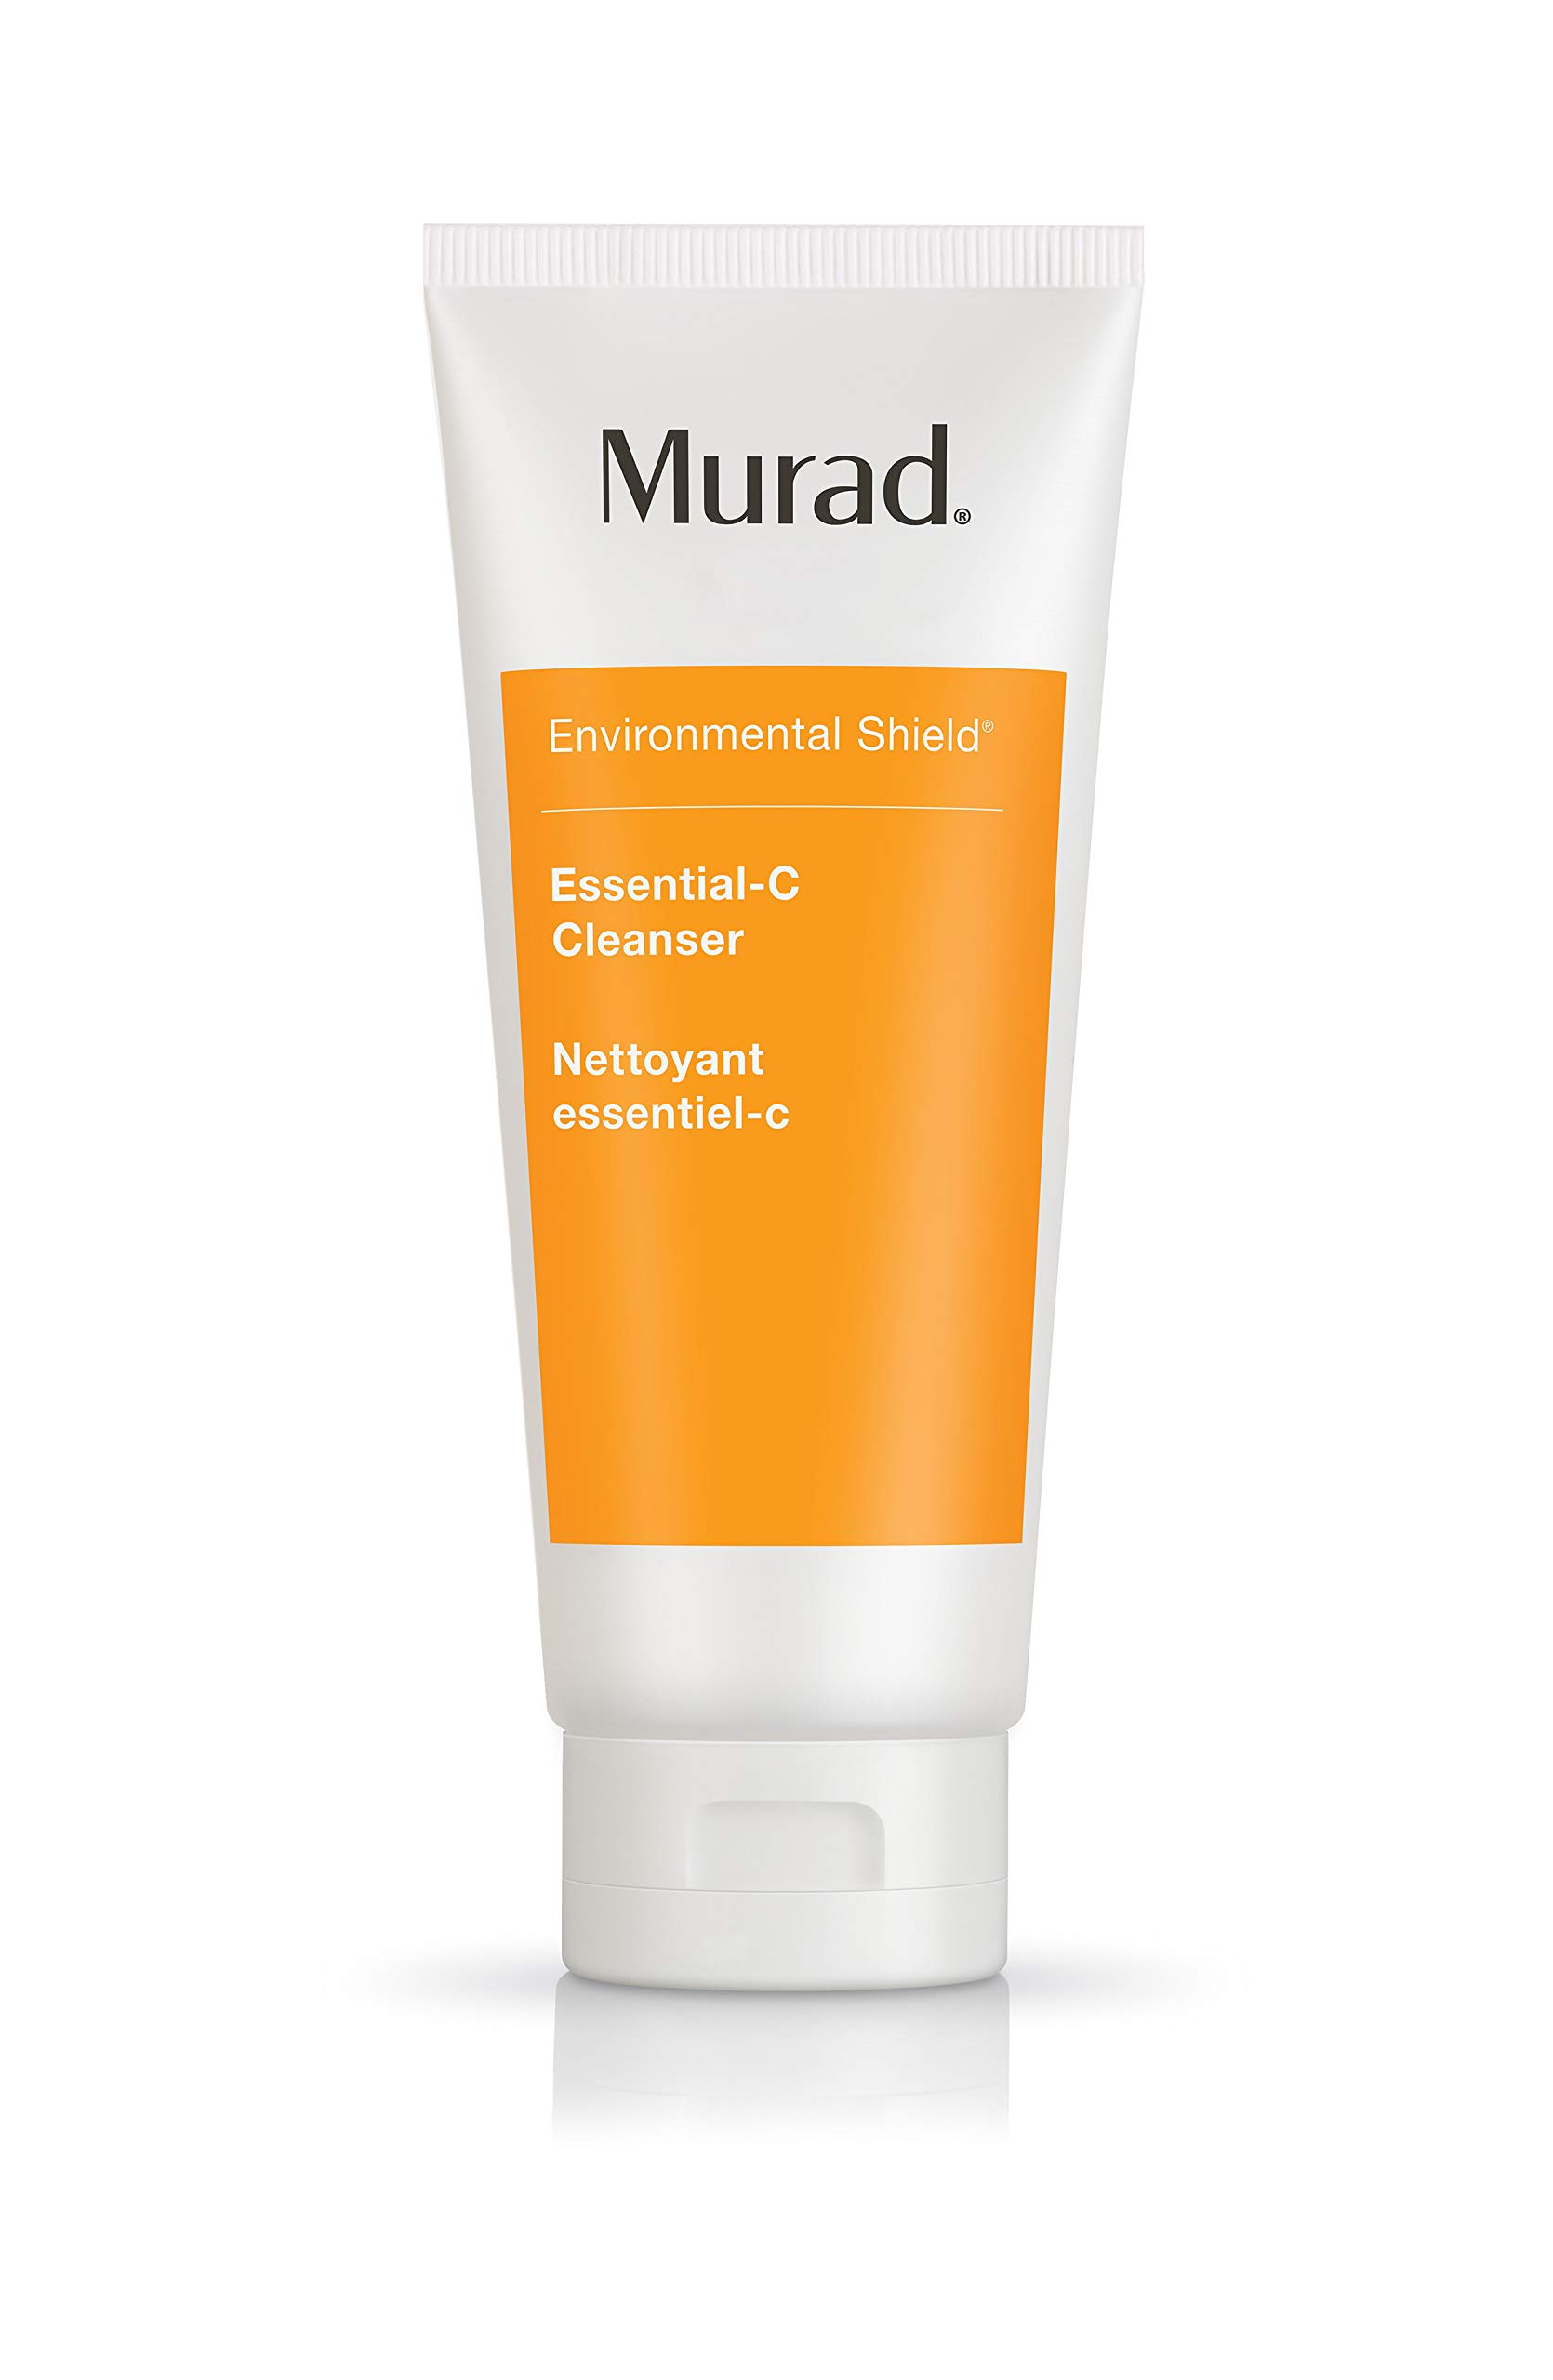 Murad Environmental Shield Essential-C Cleanser, Step 1 Cleanse/Tone, 6.75 fl oz (200 ml) by Murad